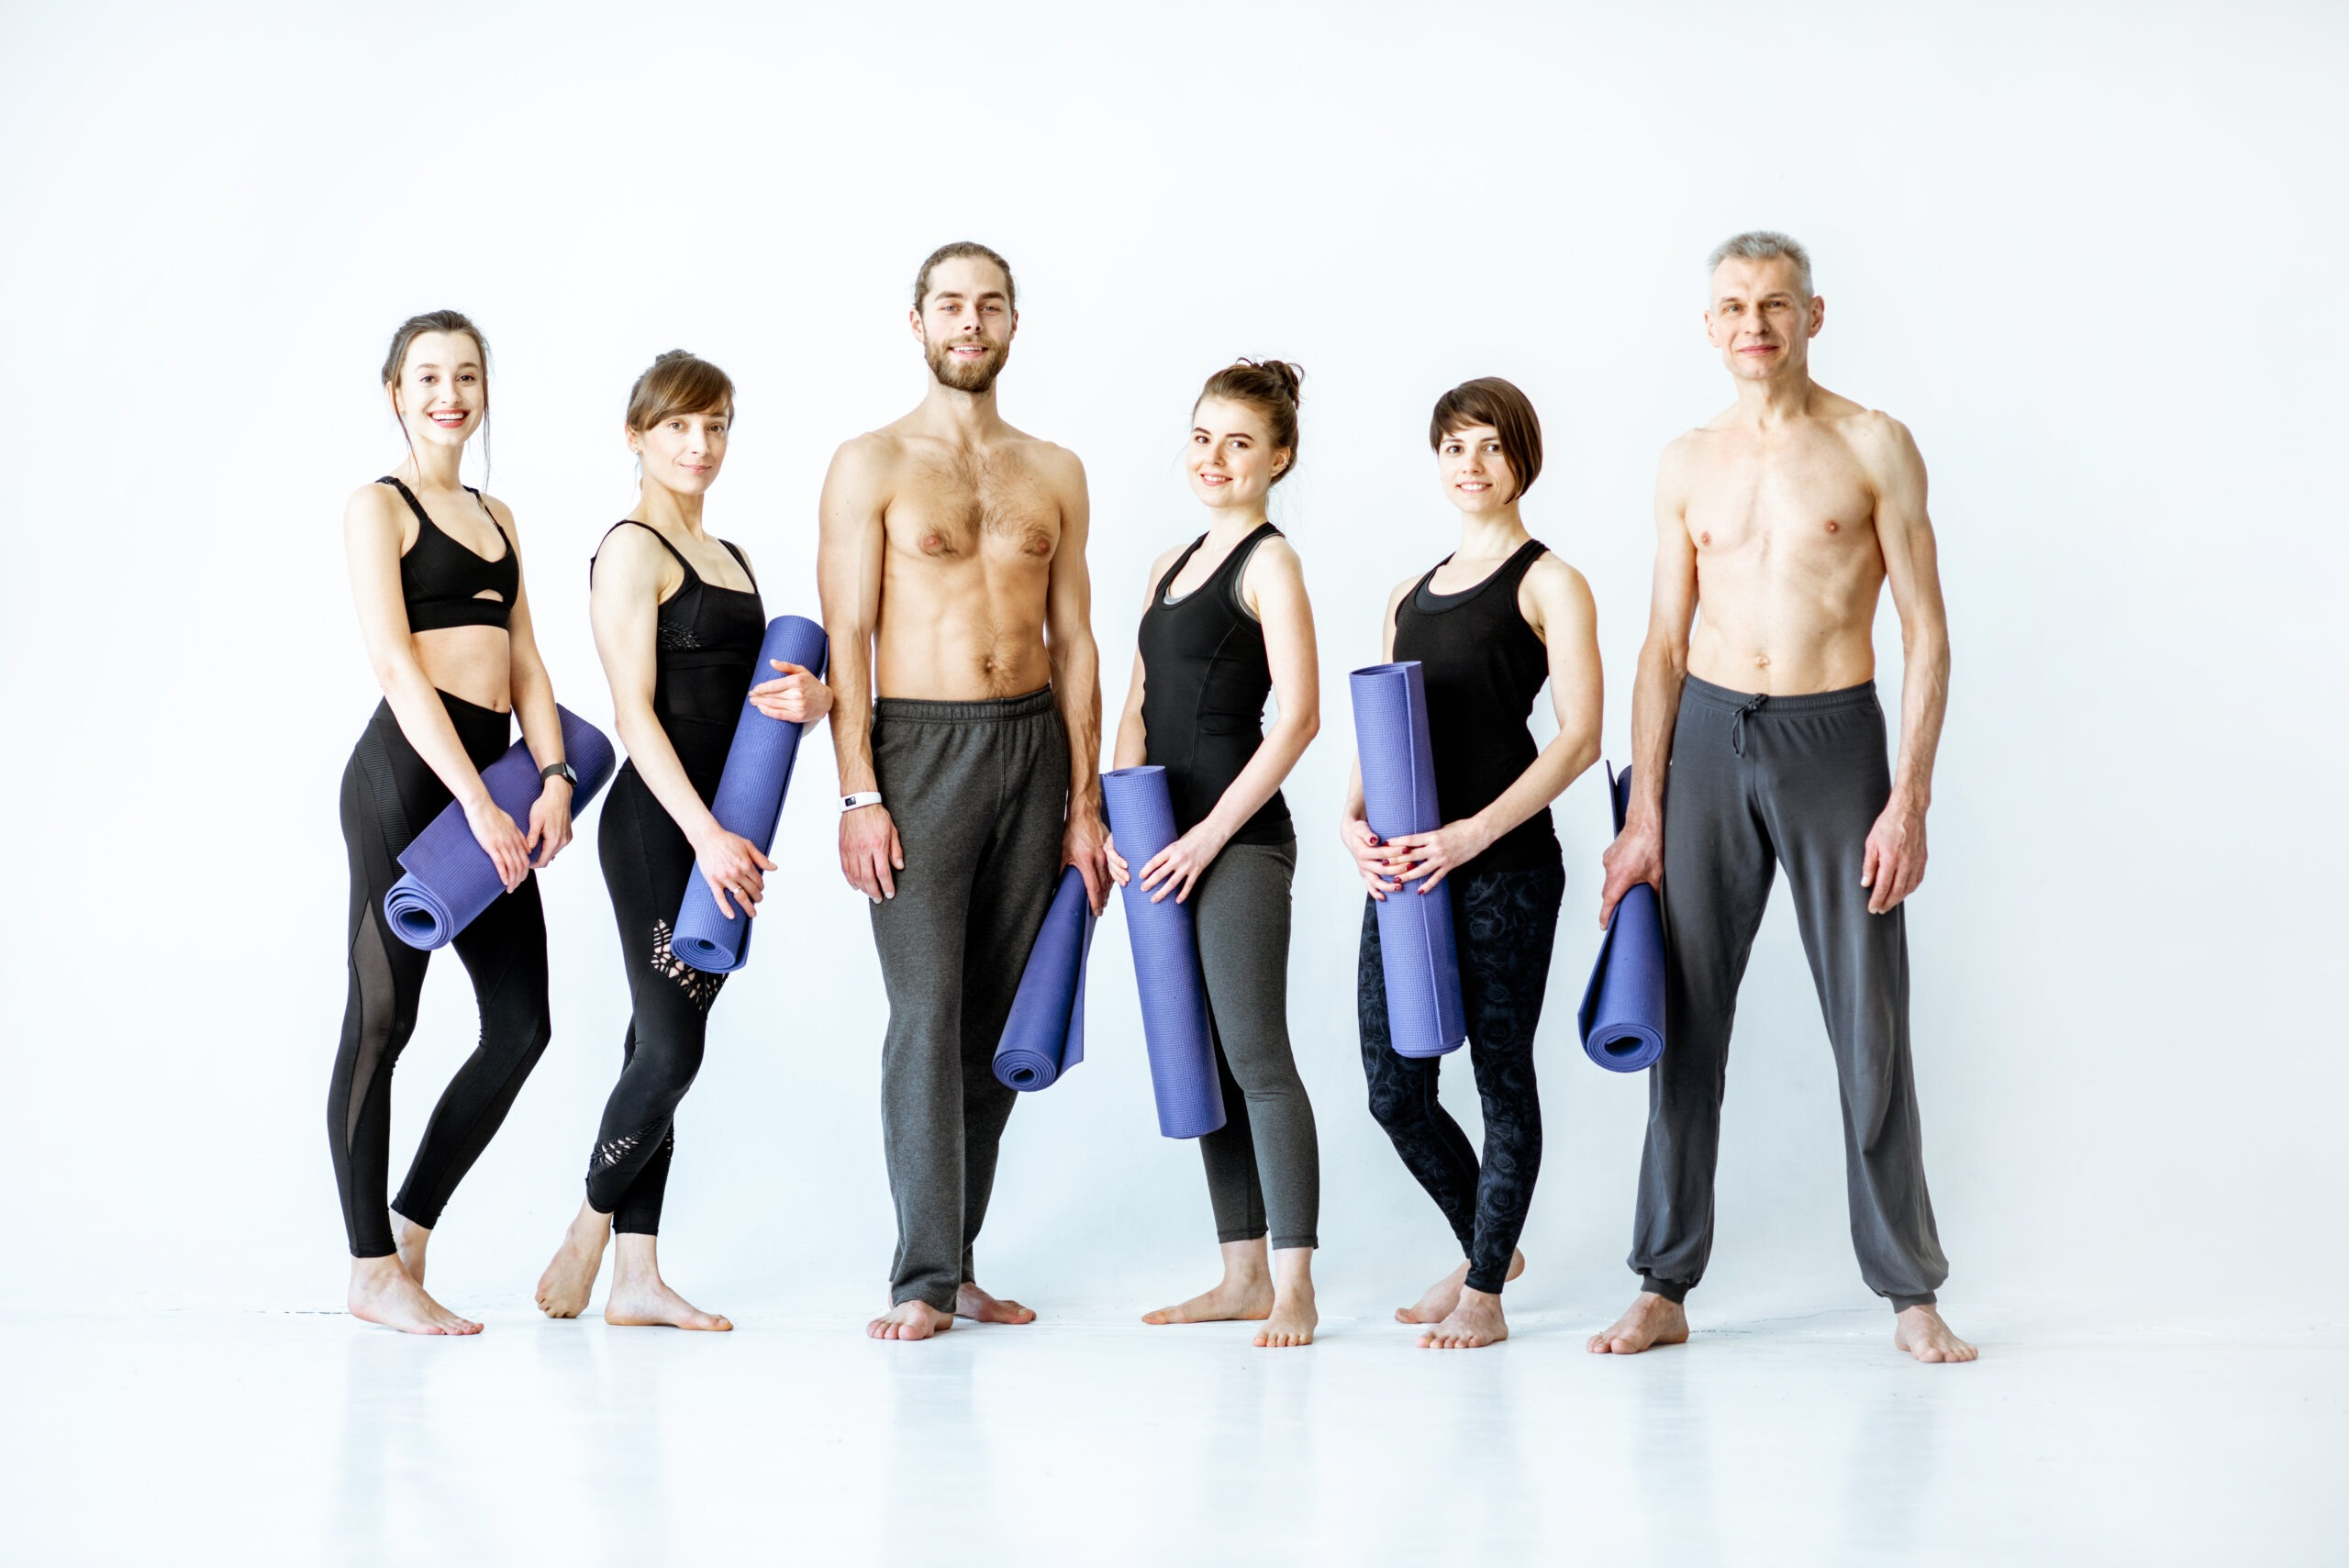 Group Of People In Sportswear With Fitness Mats In The Studio